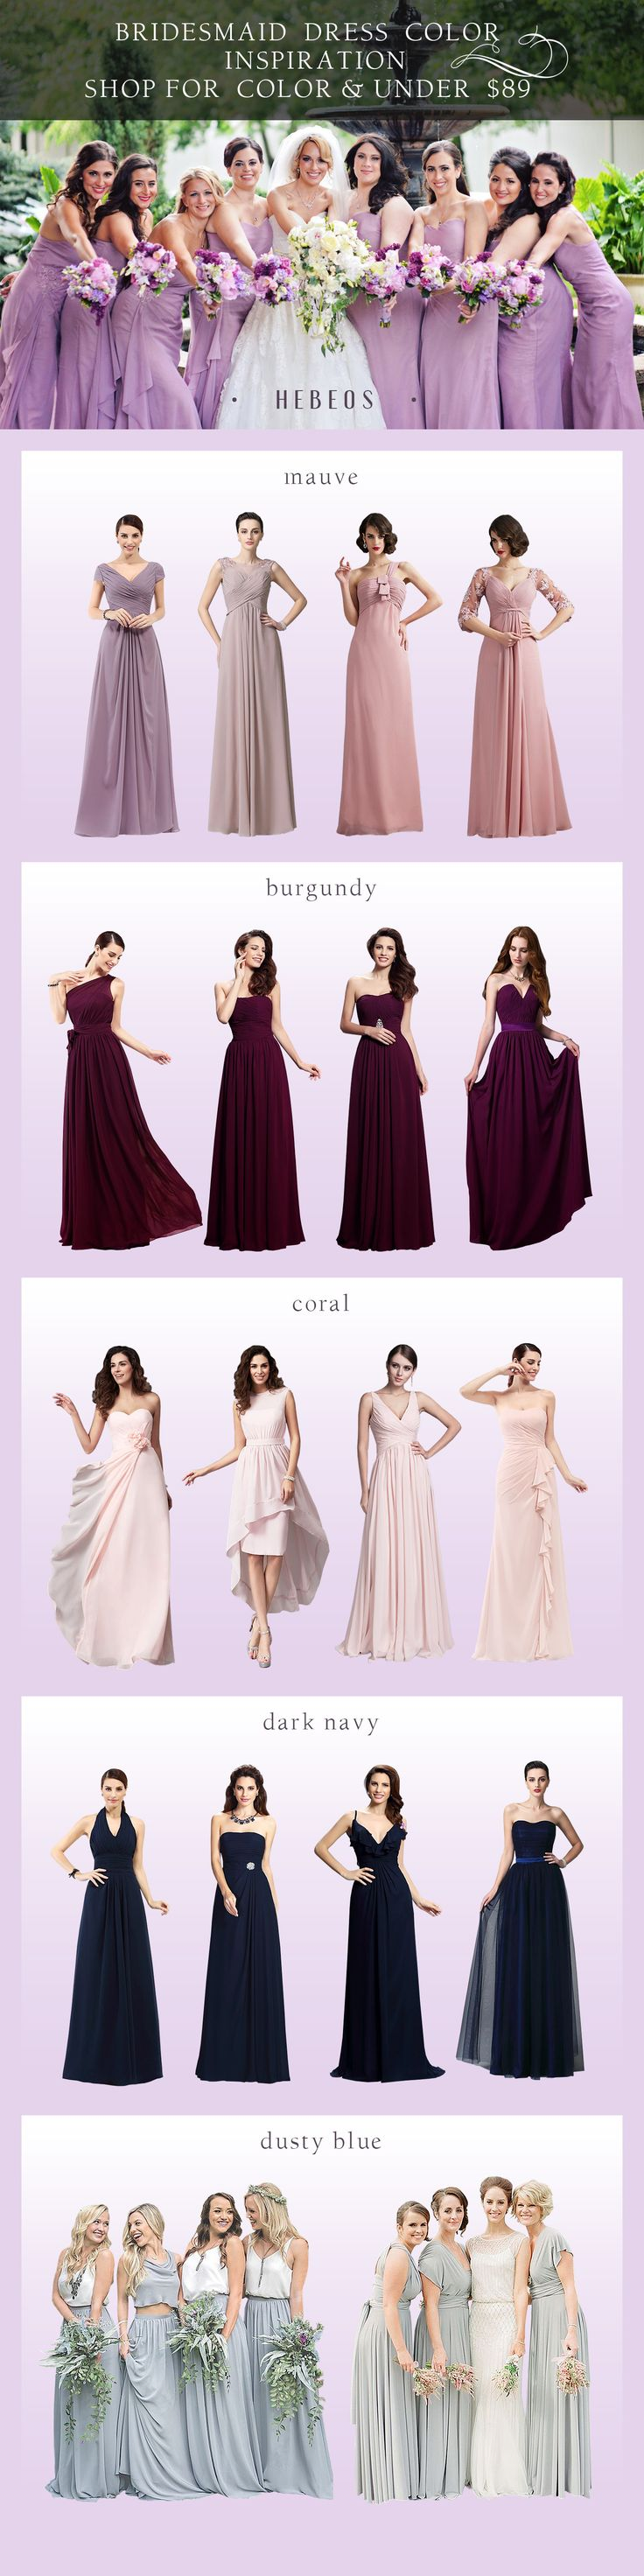 Shop for latest affordable bridesmaid dresses include all styles & colors. Design & Handmade from #Hebeos